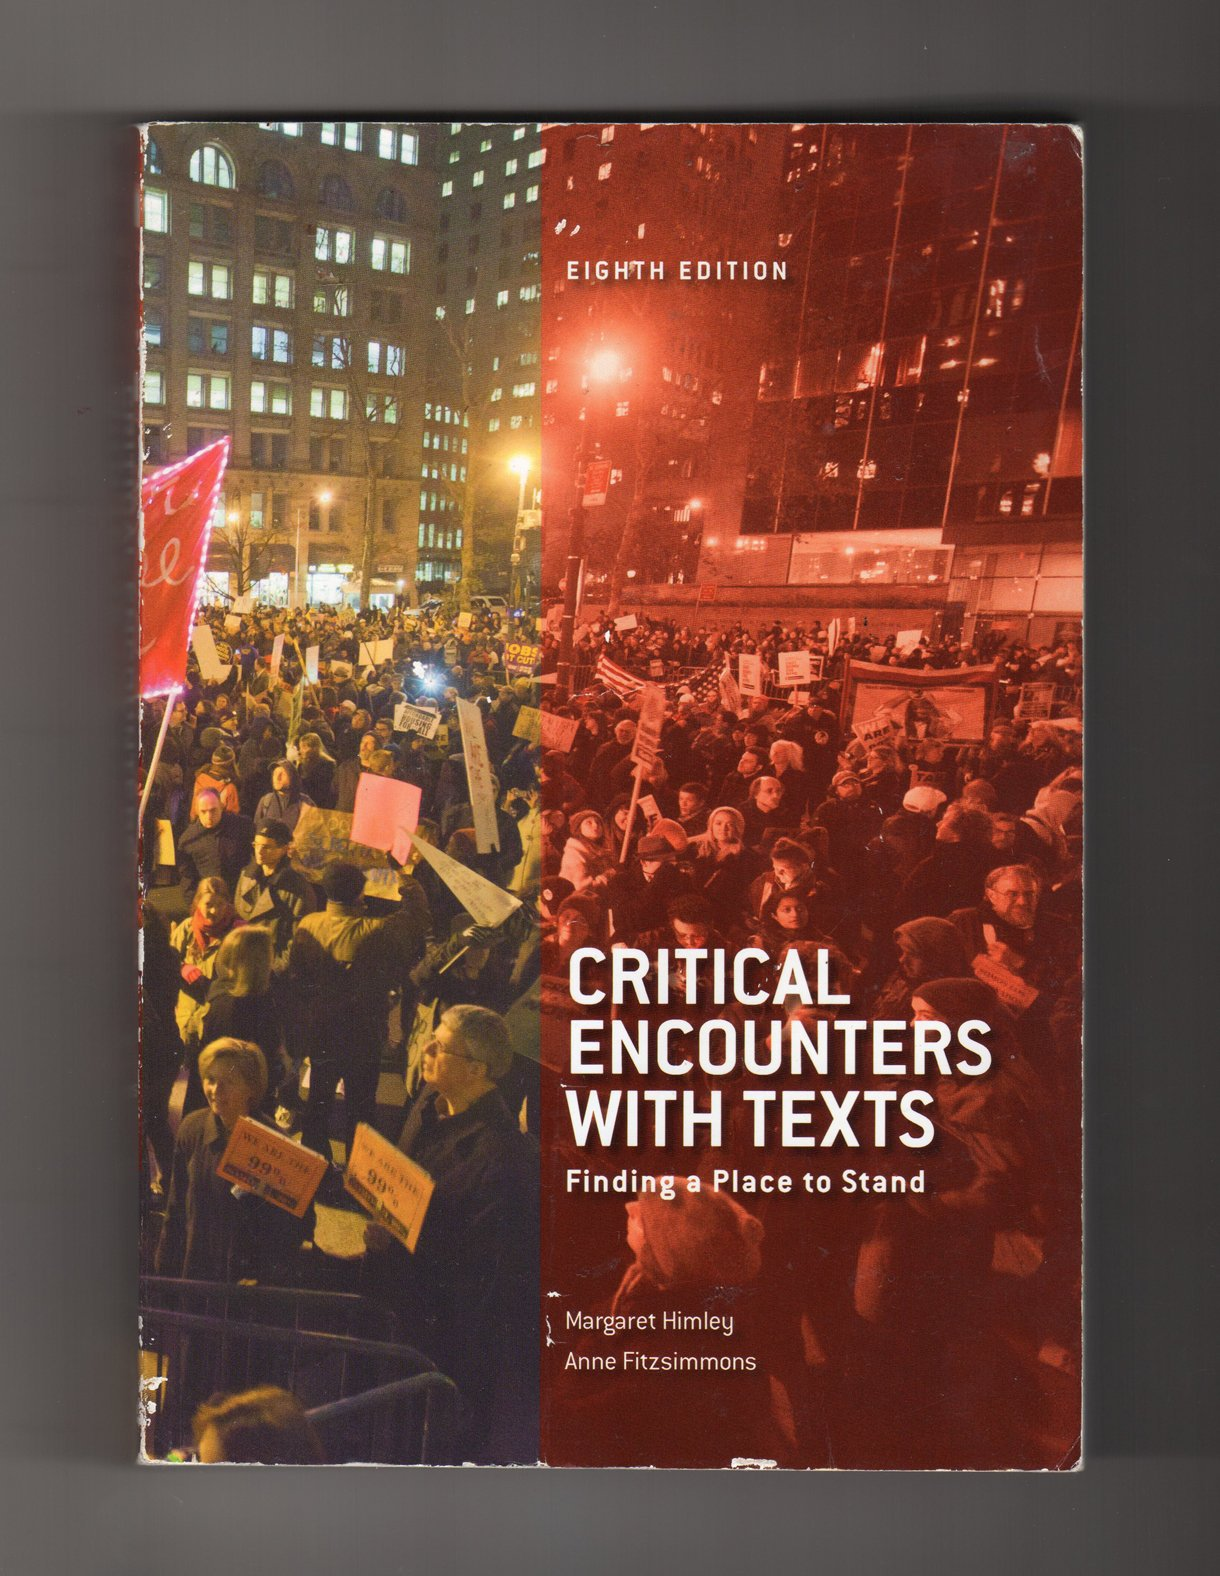 Critical Encounters with Texts: Finding a Place to Stand